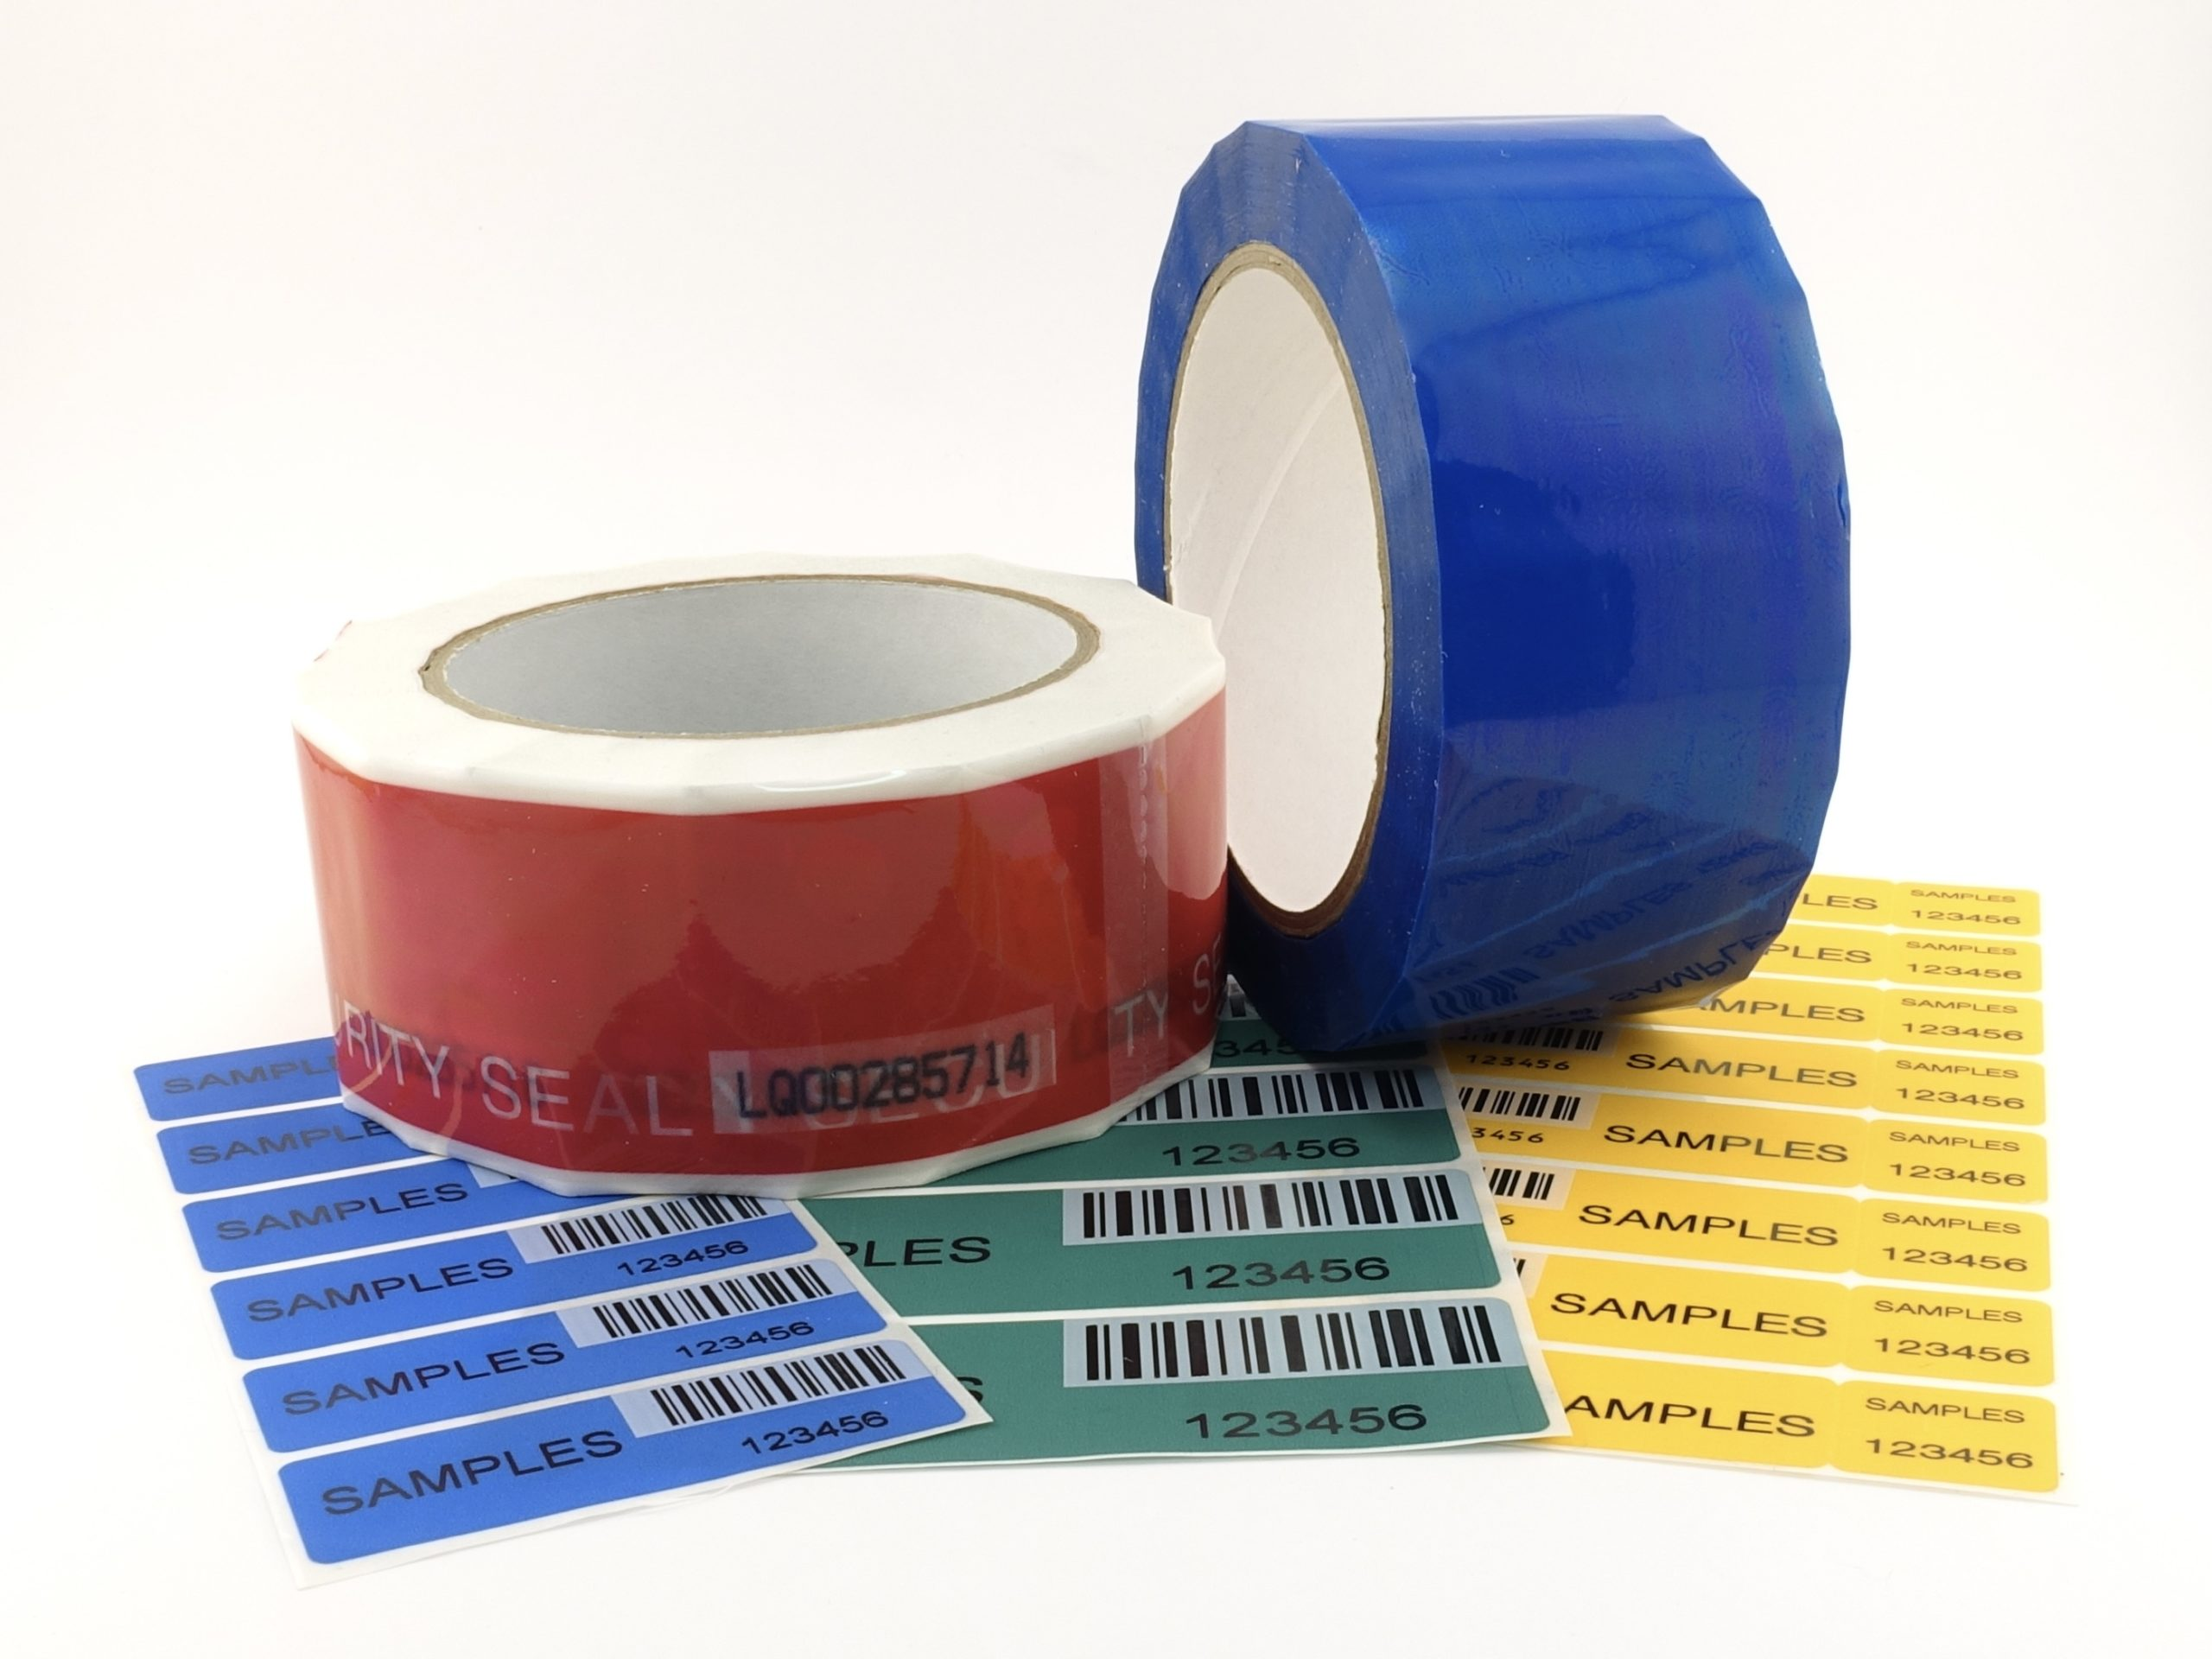 SECURITY LABEL SEALS AND TAPES